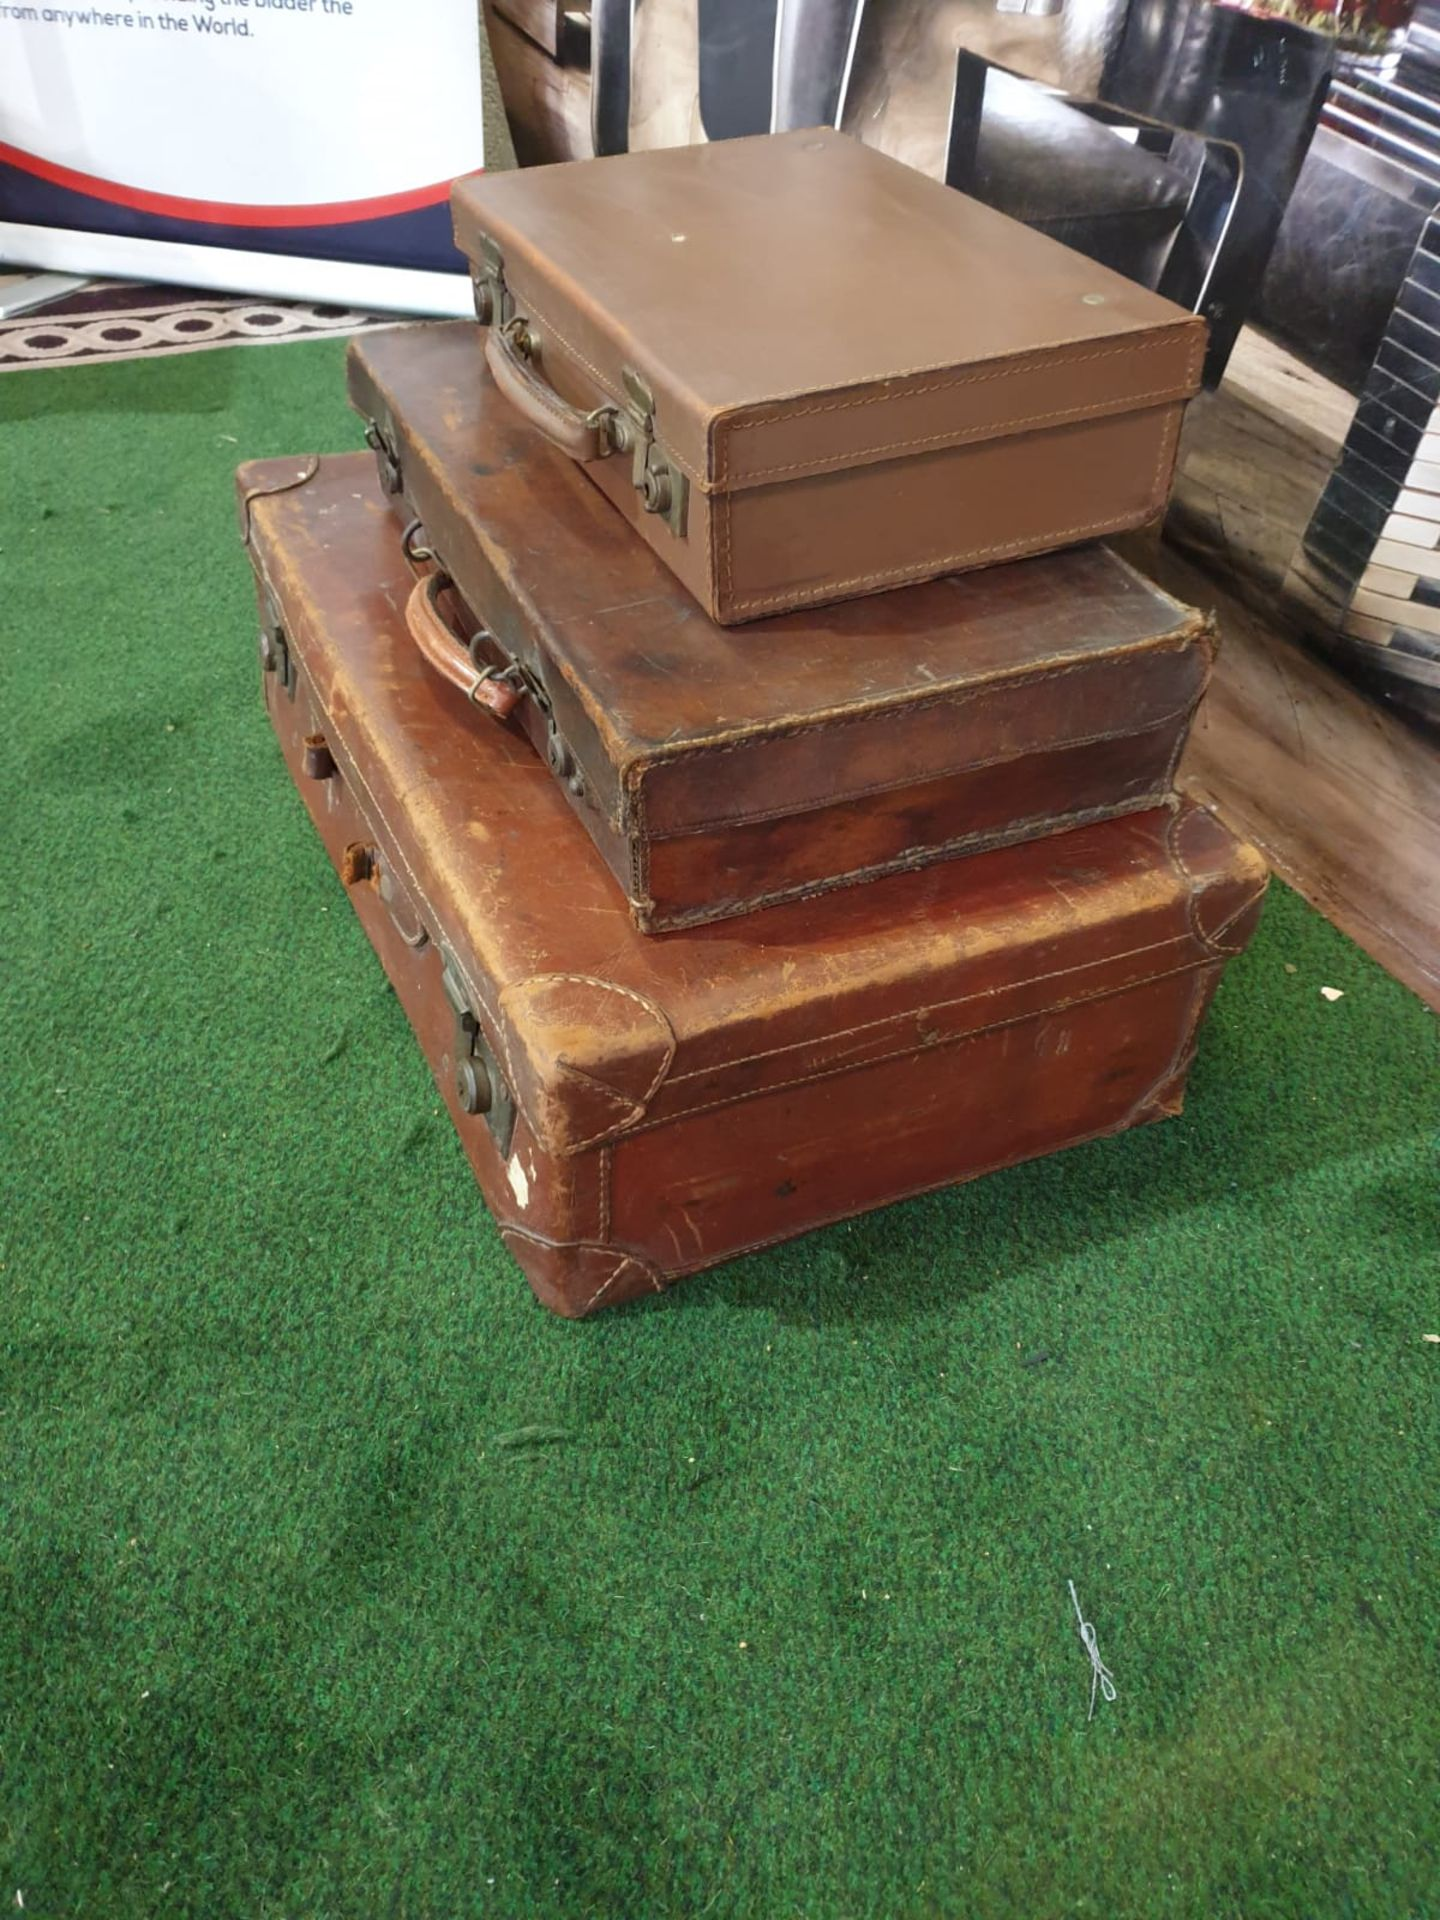 A set of 3 x vintage leather travel cases 60 x 36cm, 48 x 29cm and 35 x 24cm